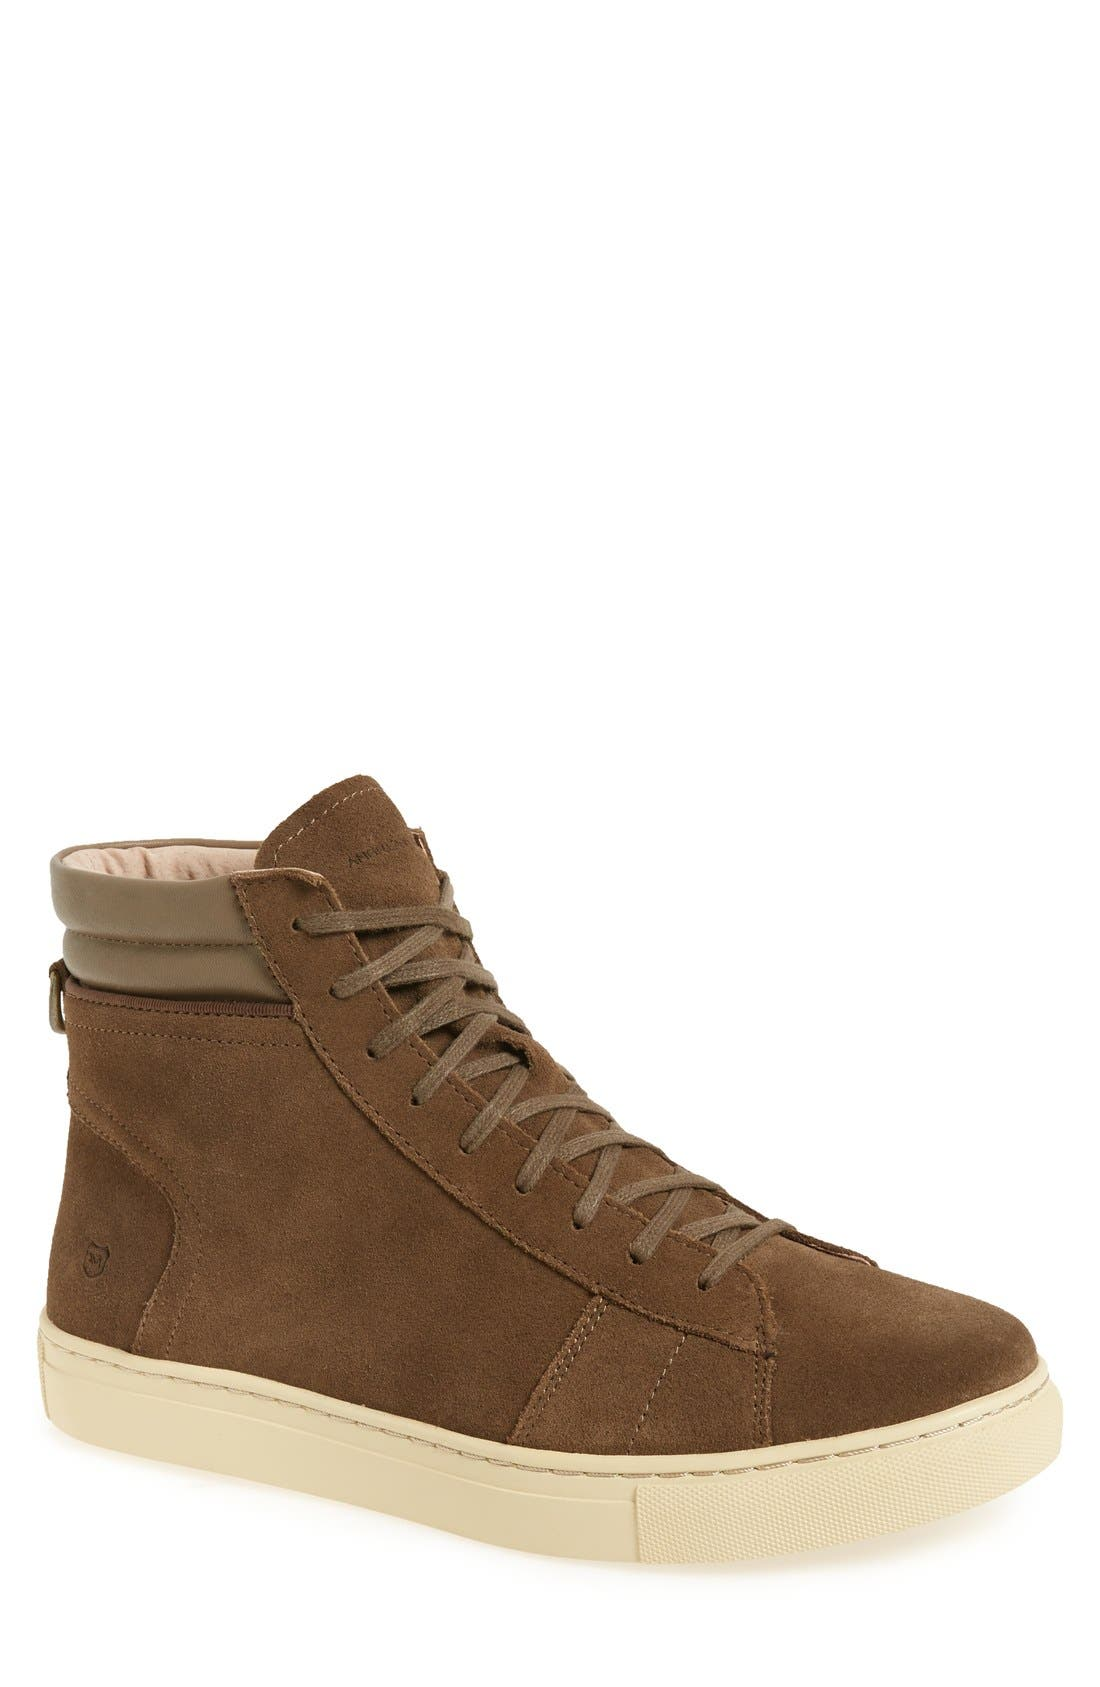 Alternate Image 1 Selected - Andrew Marc 'Remsen' High Top Sneaker (Men)